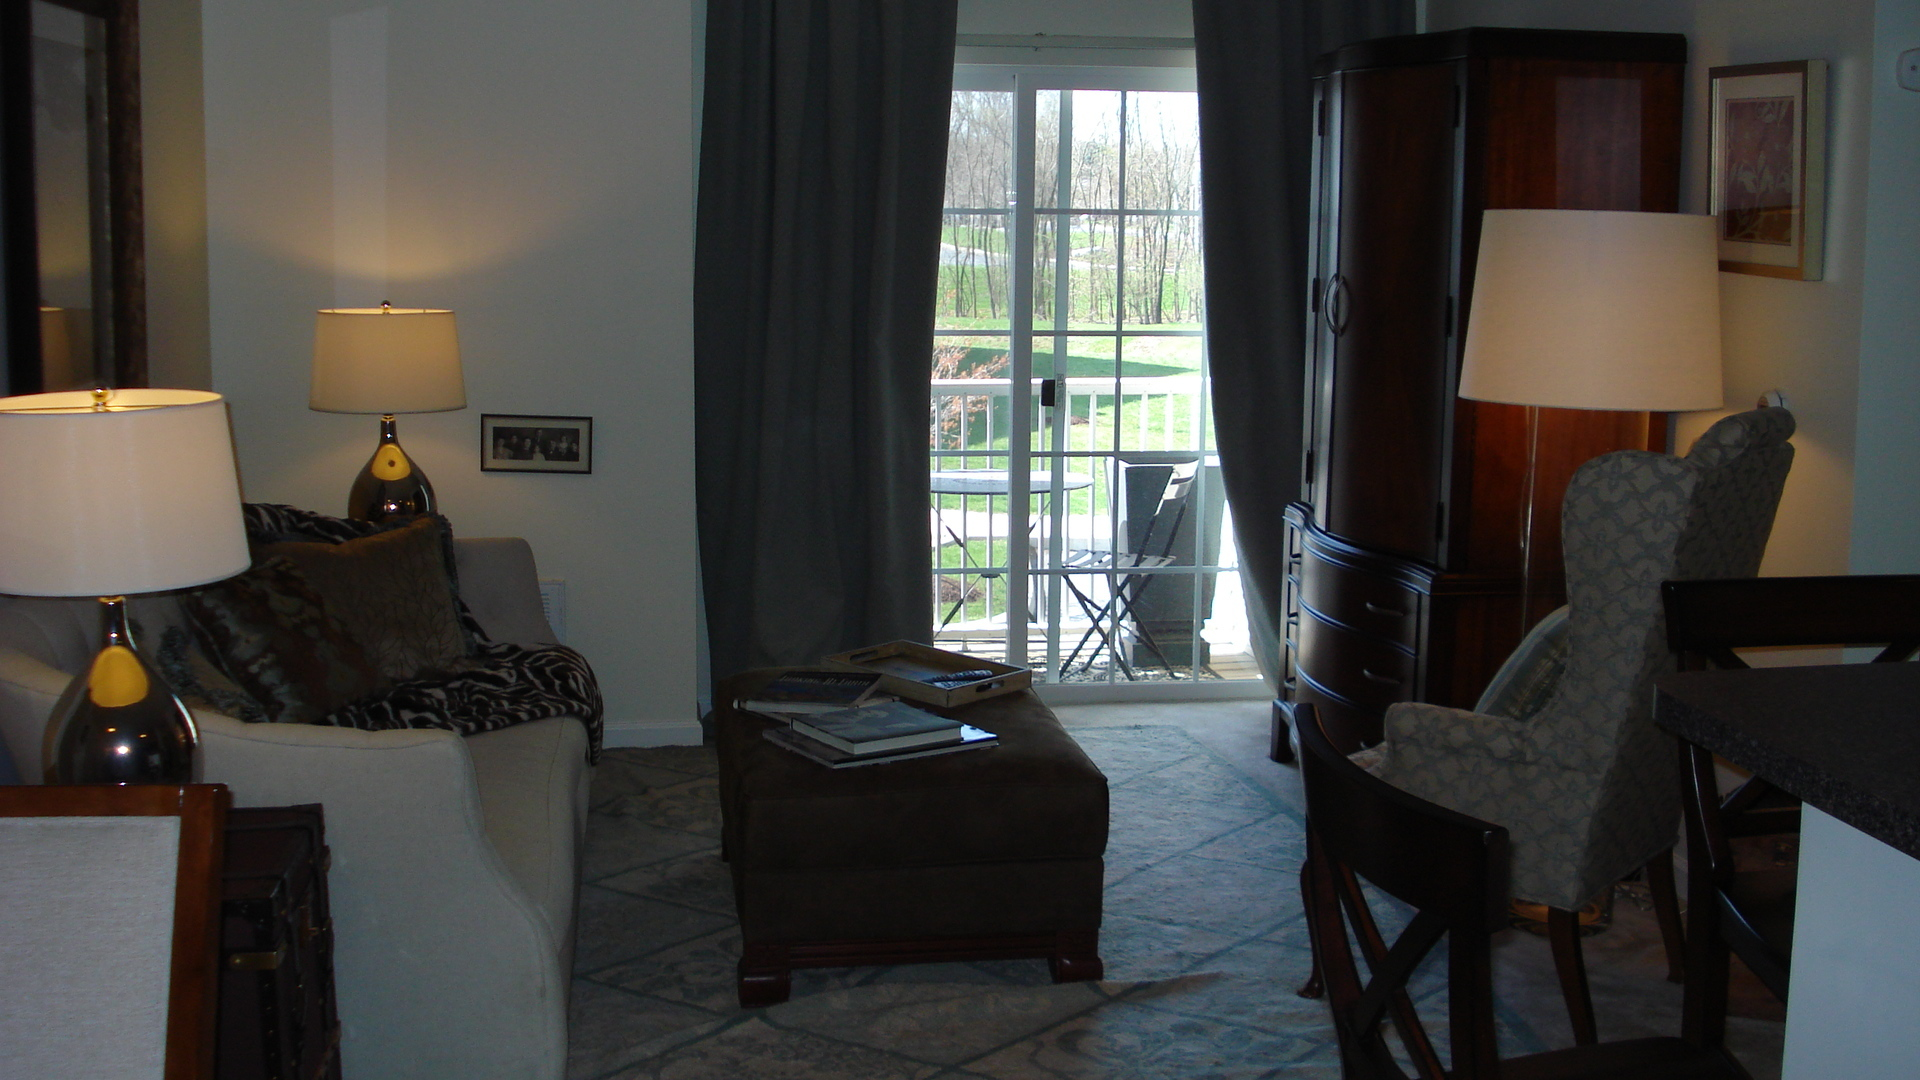 Furnished housing near Ahold in Carlisle PA